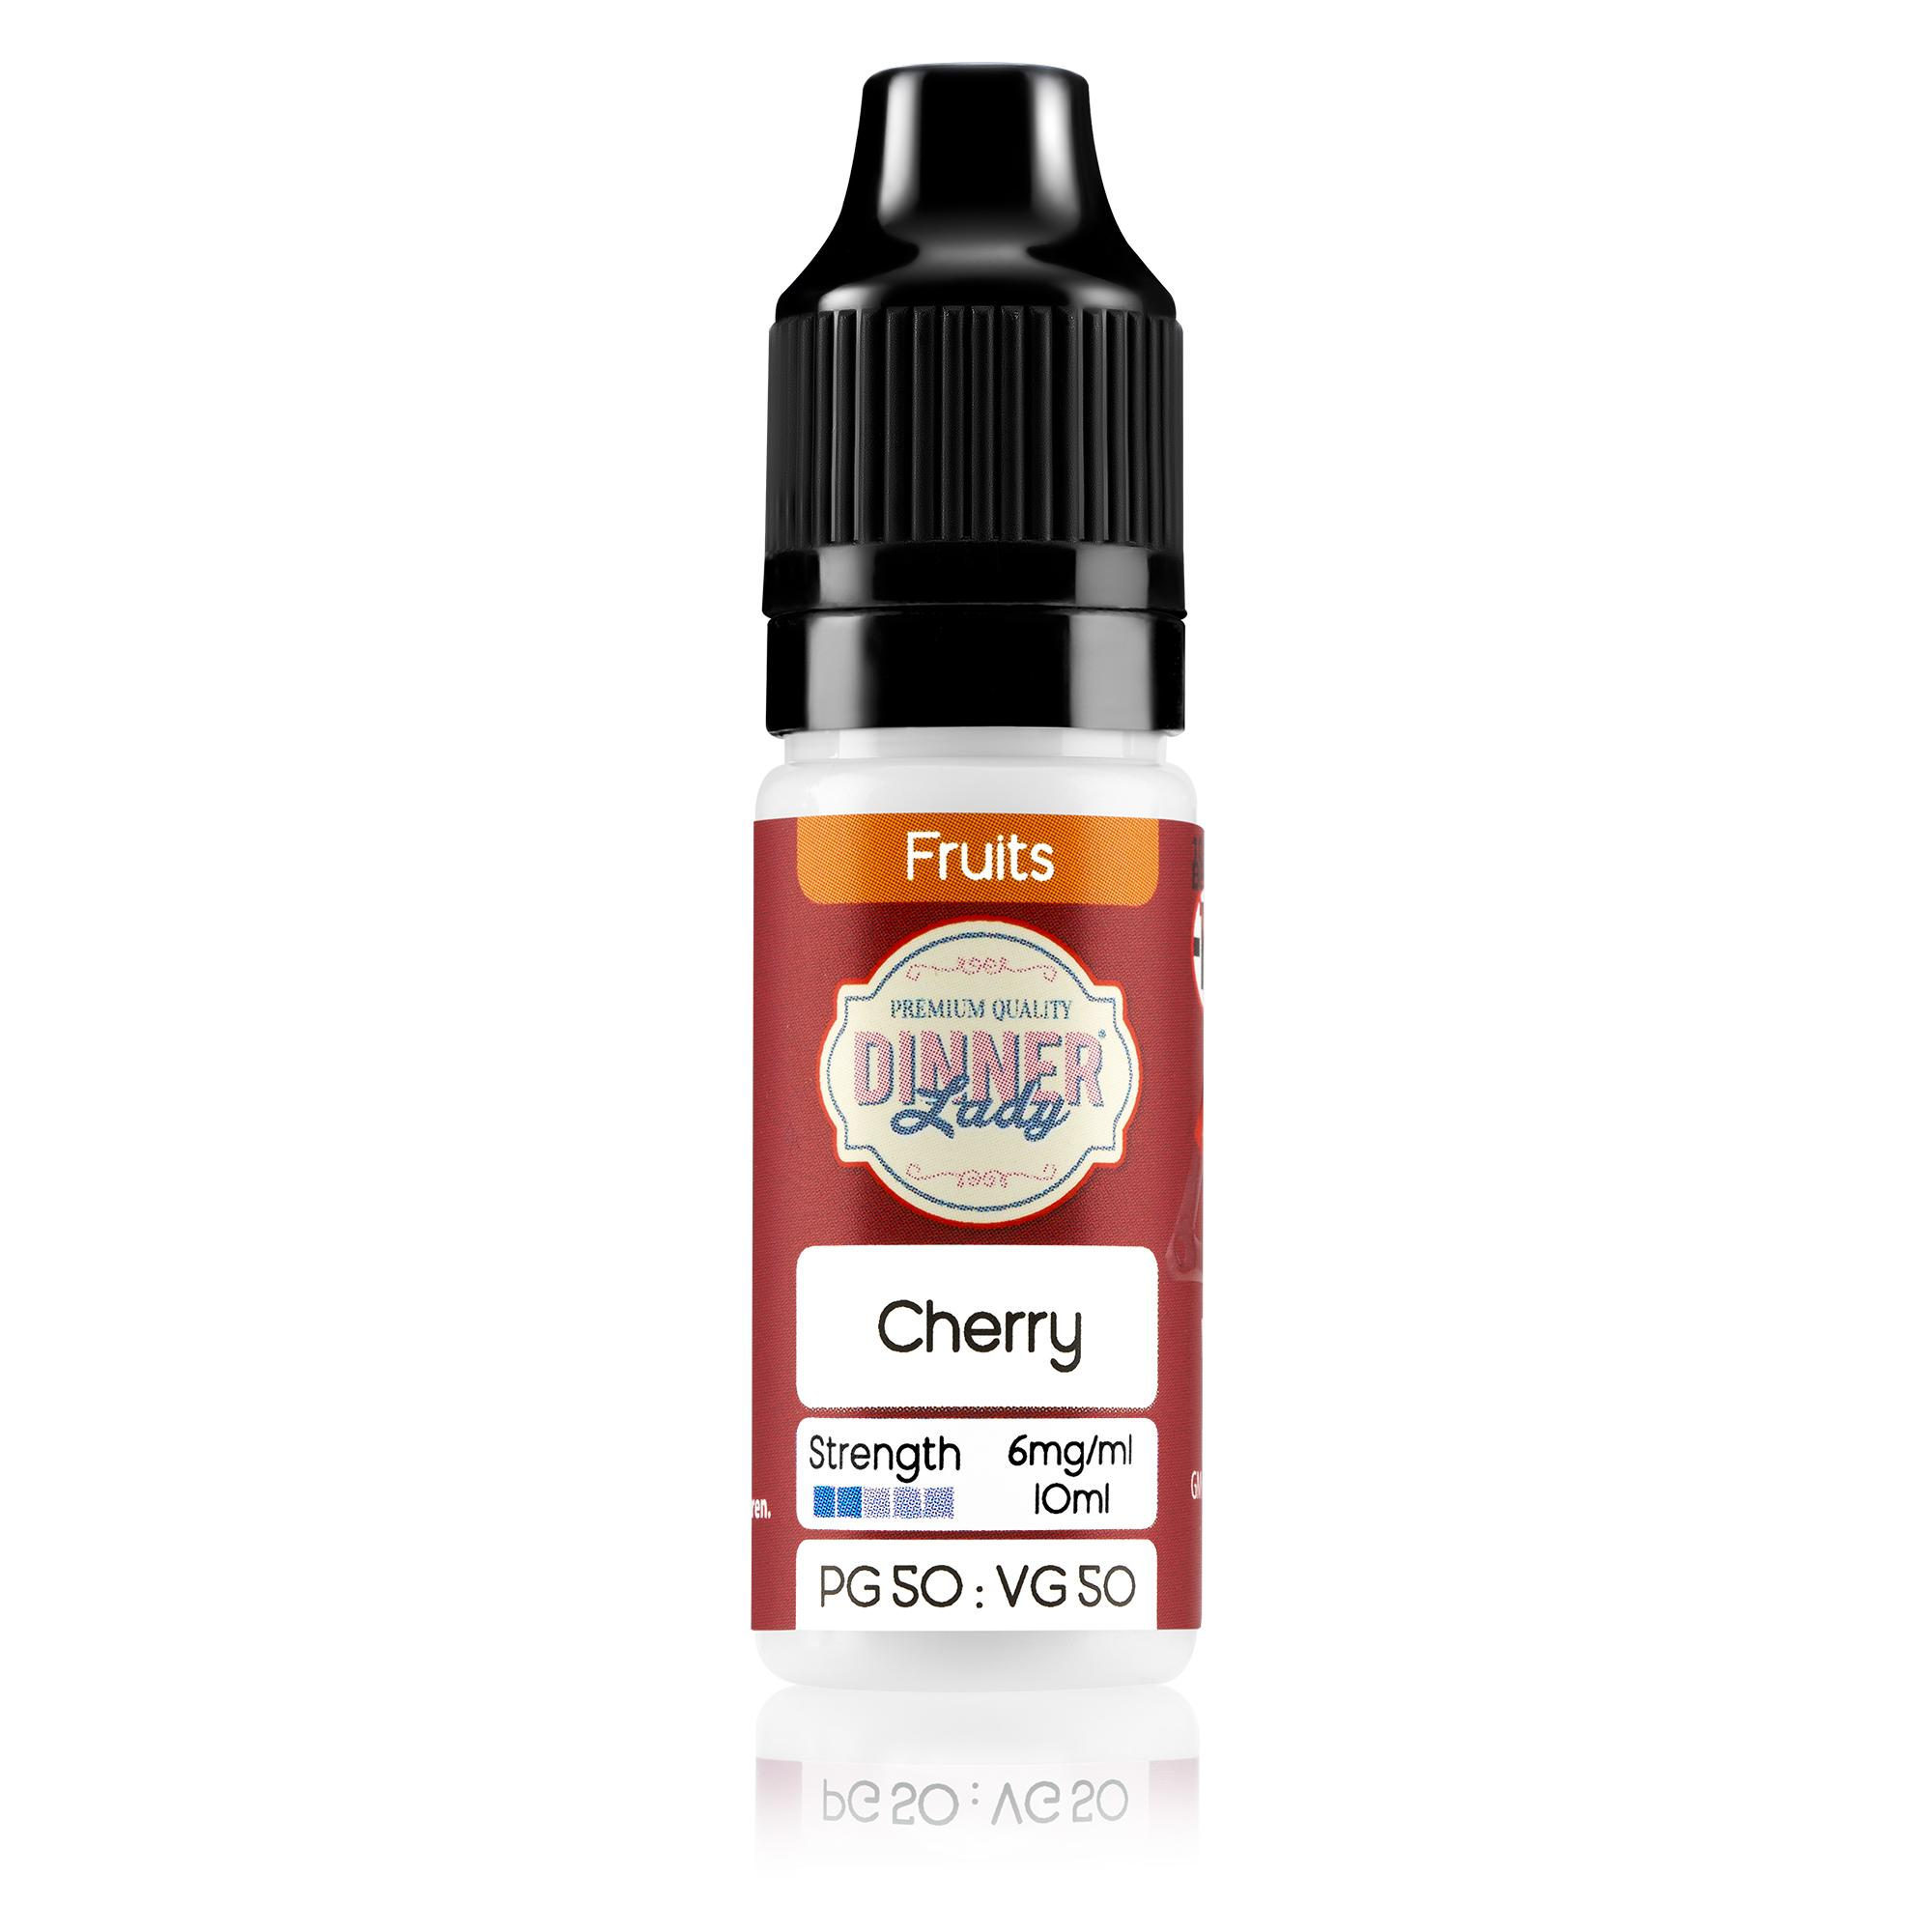 Dinner Lady 50:50 10ml Cherry flavoured e-liquid - Bottle